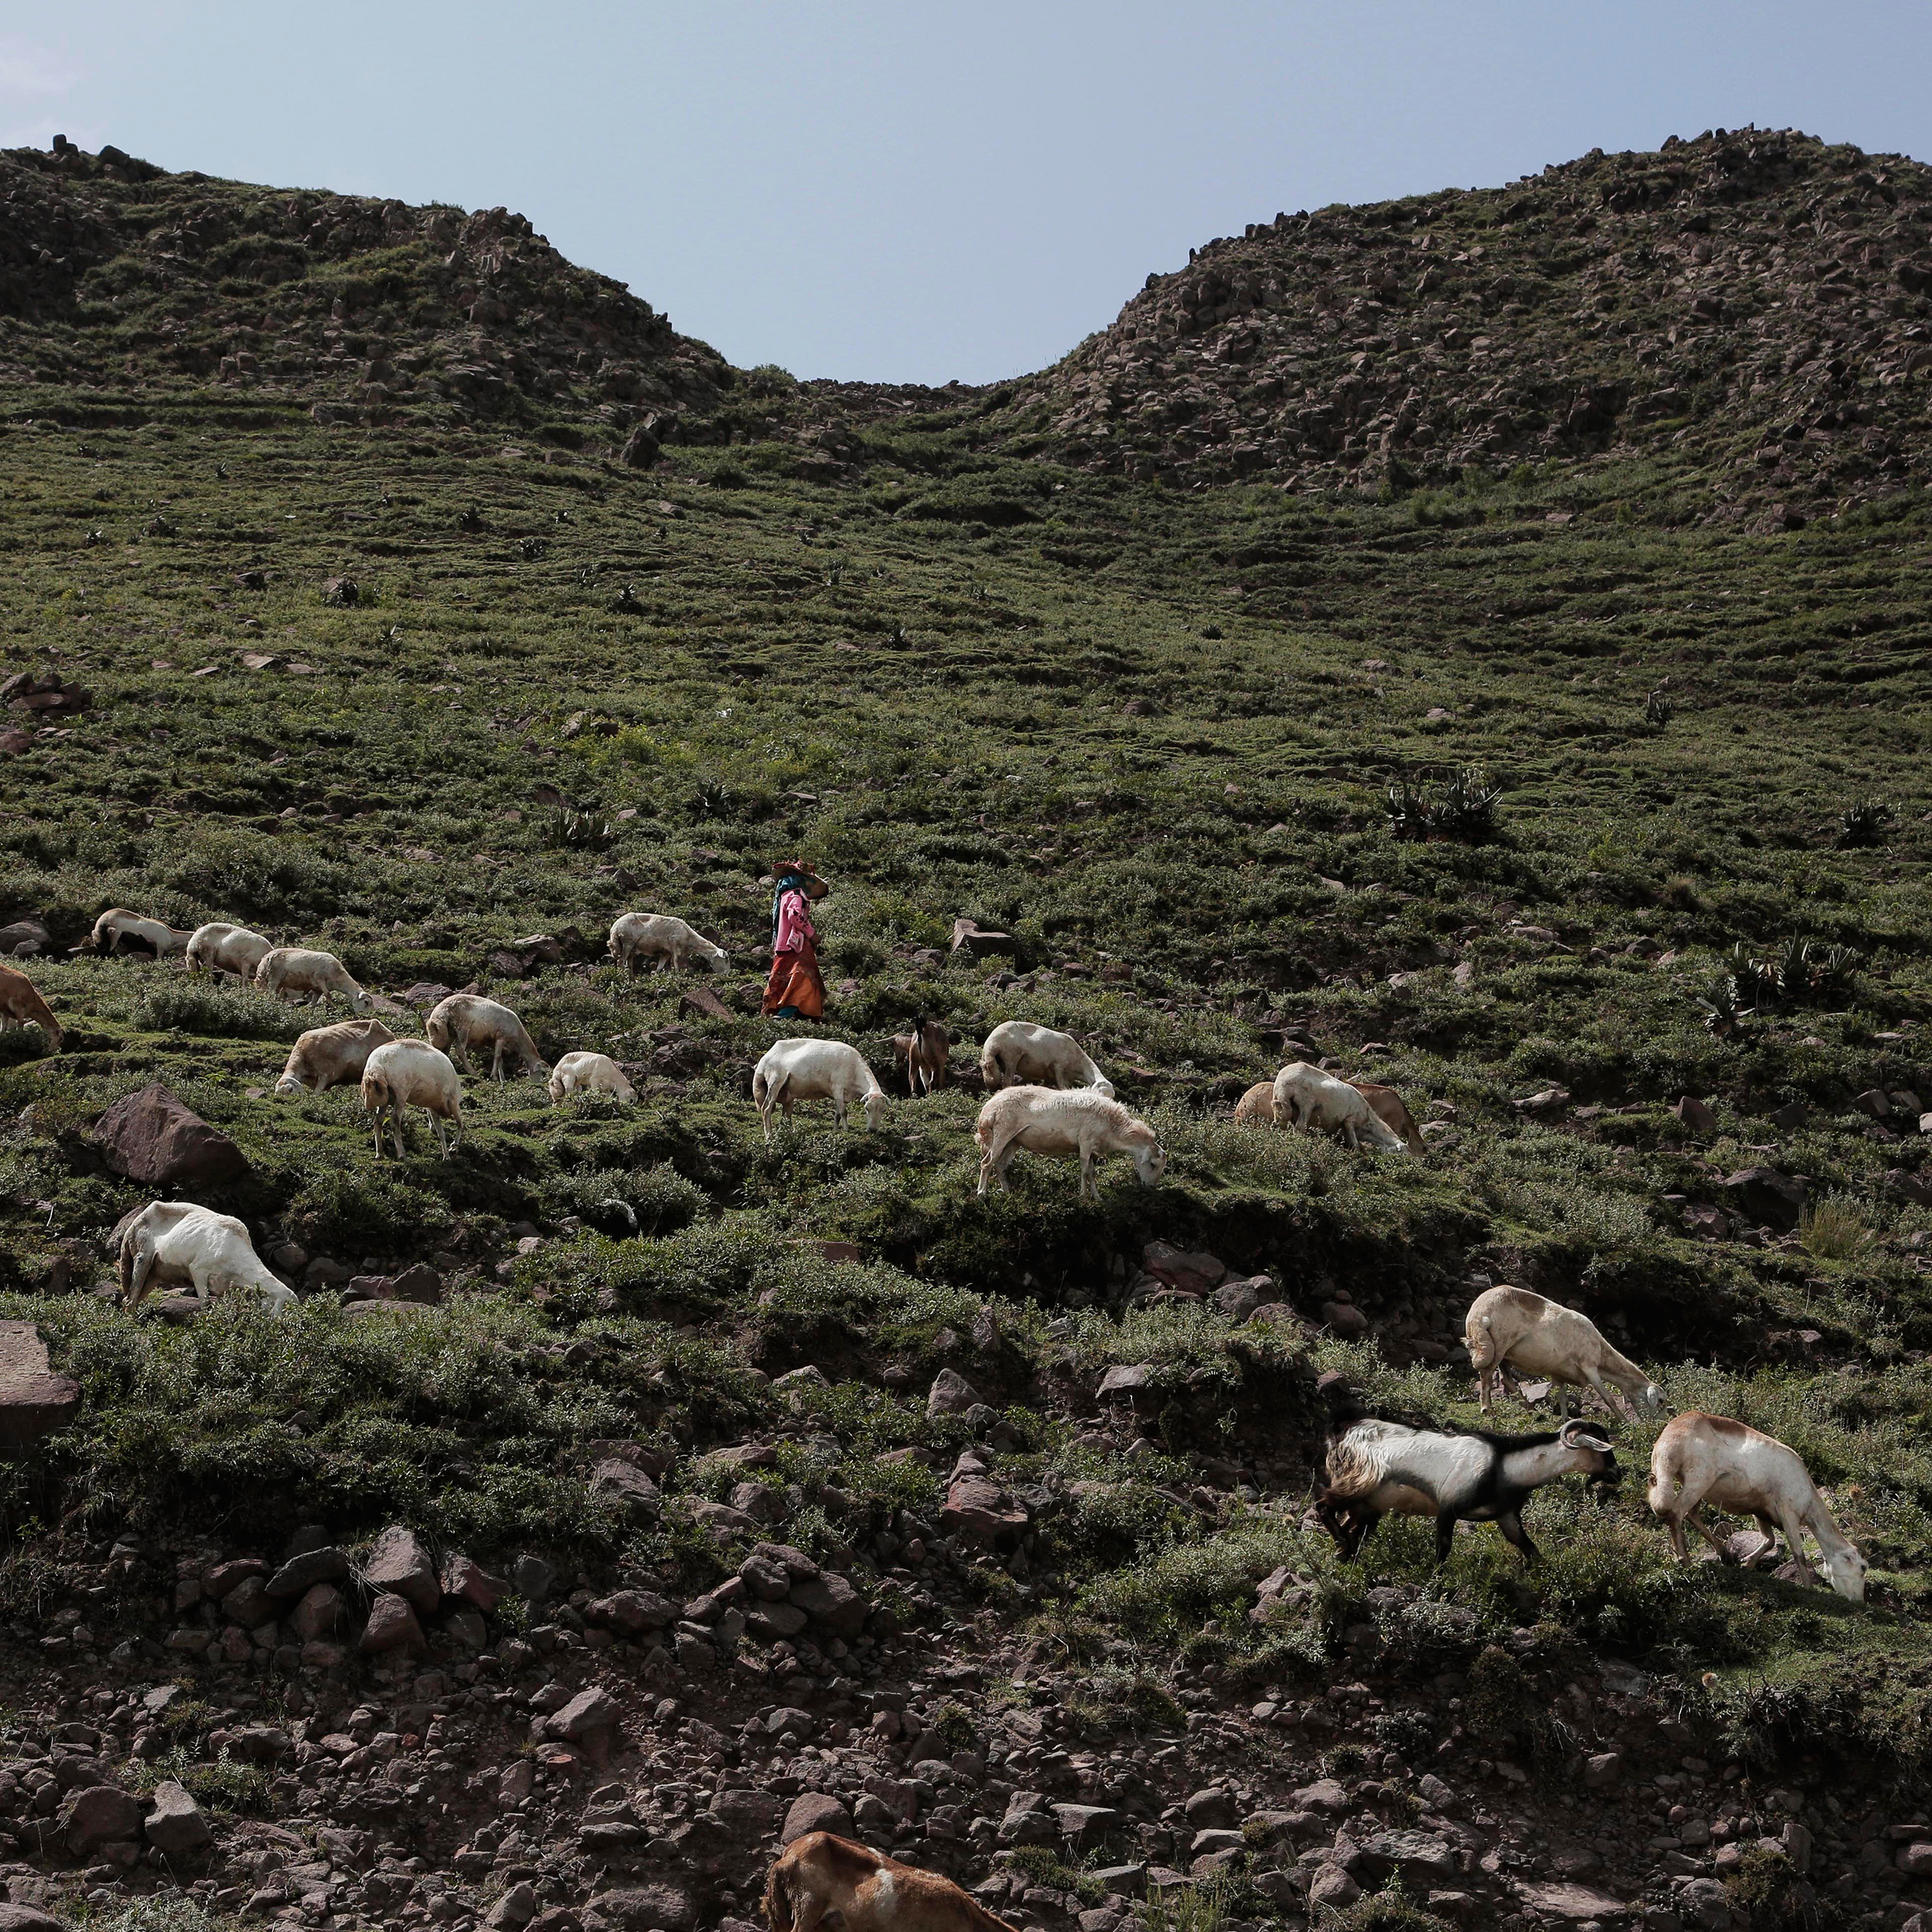 A farmer leads her sheep along the side of a mountain in Ibb, Yemen, on Aug. 3, 2018.